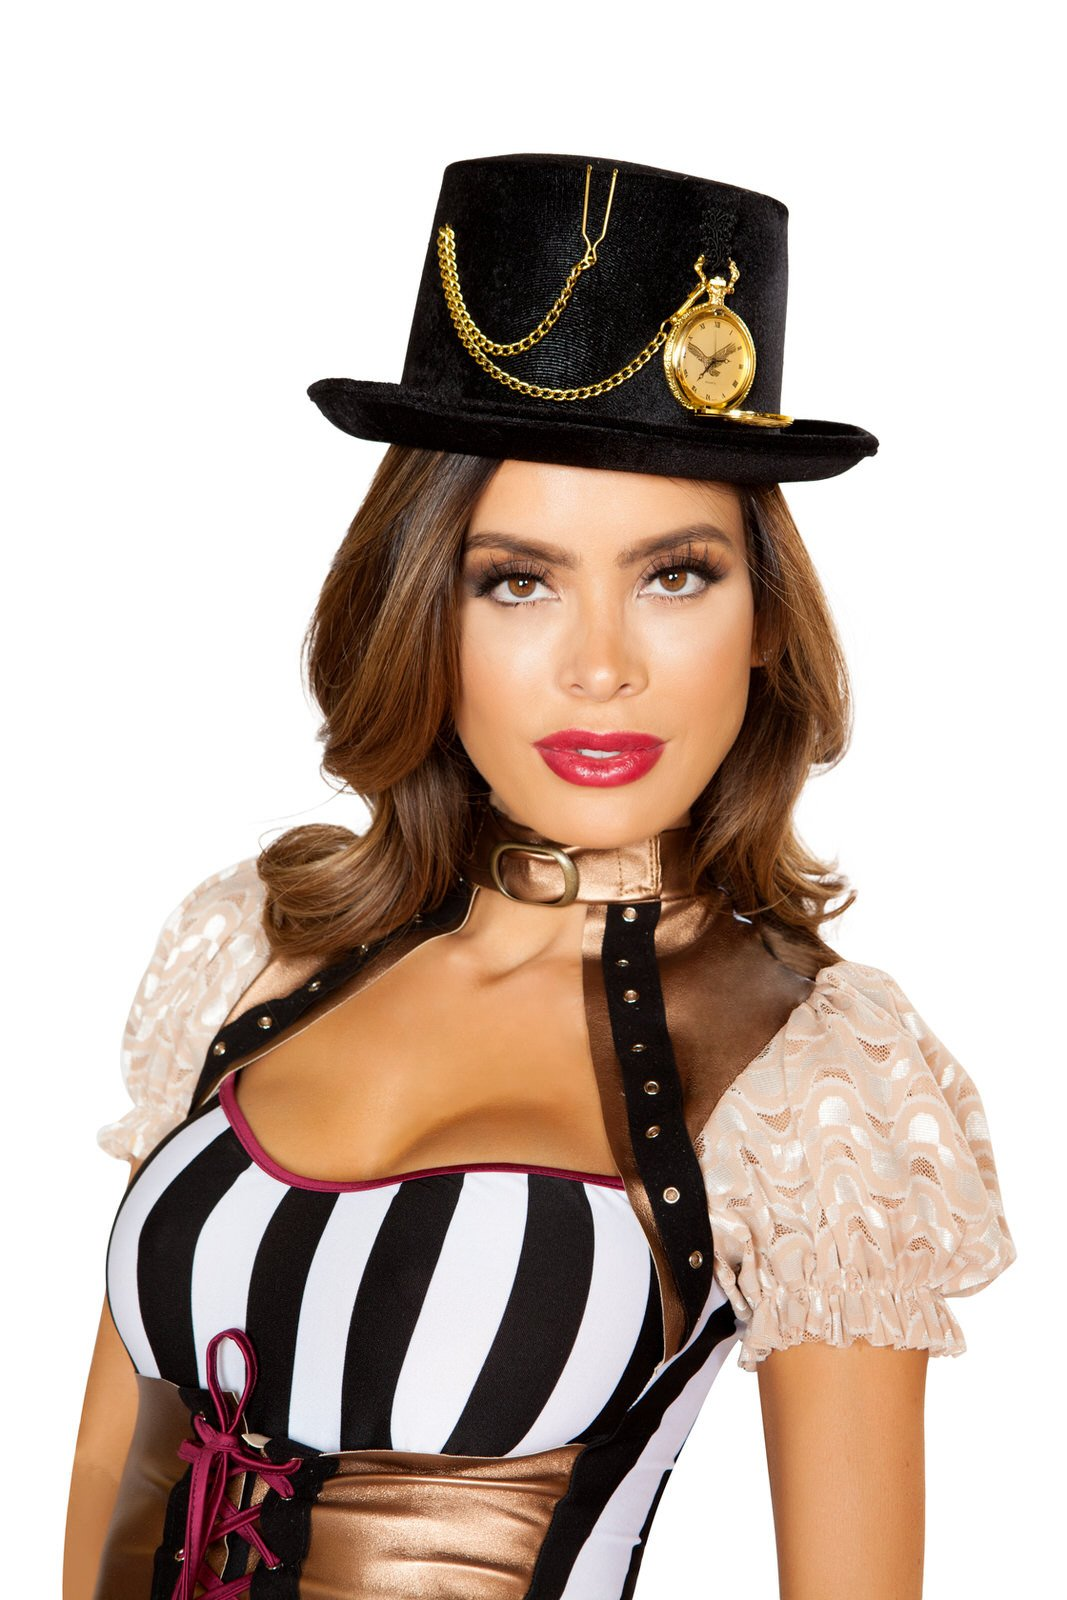 Buy Top Hat with Pocket Watch from Rave Fix for $22.50 with Same Day Shipping Designed by Roma Costume 10106-AS-O/S